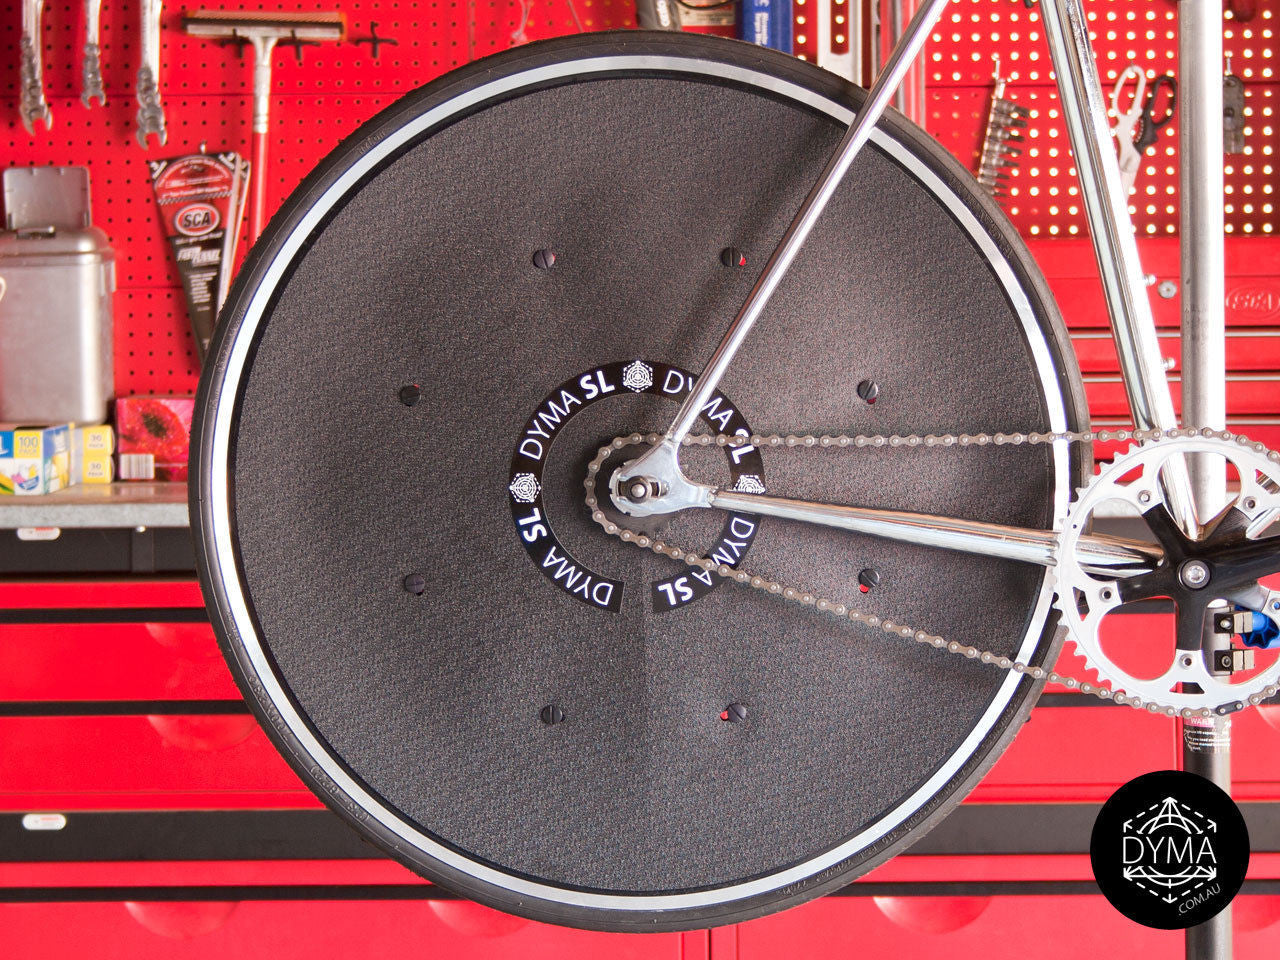 Dyma SL Track Time Trial Rim Disc Cover